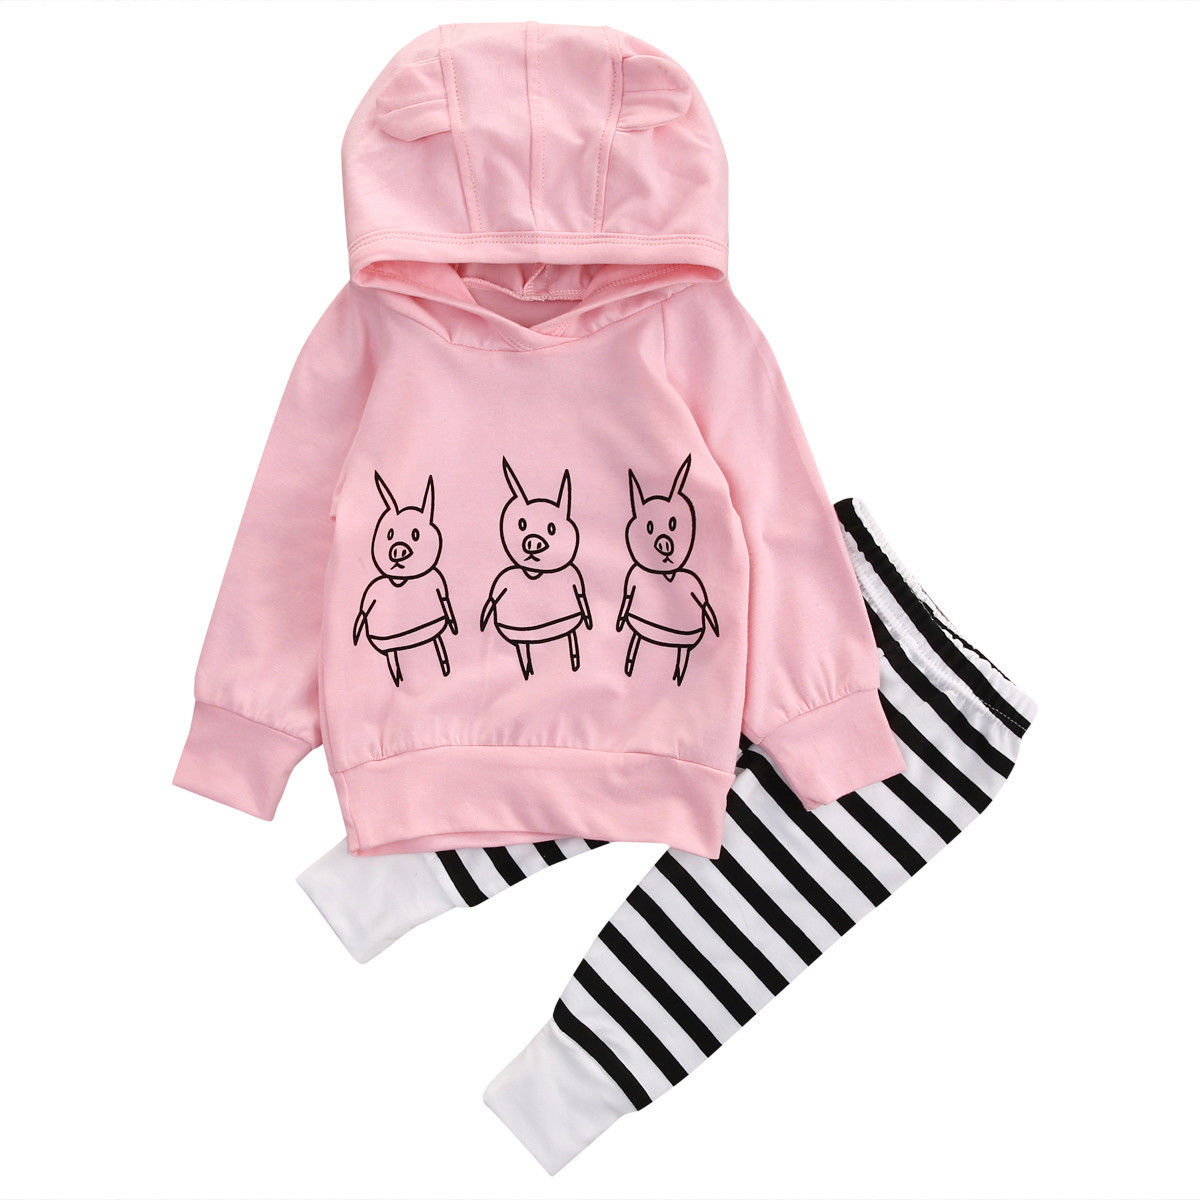 Pink Newborn Infant Baby Girls Clothes Hoodie Tops + Striped Long Pants Leggings 2Pcs Pig Longsleeve Outfits Sets 0-24Months